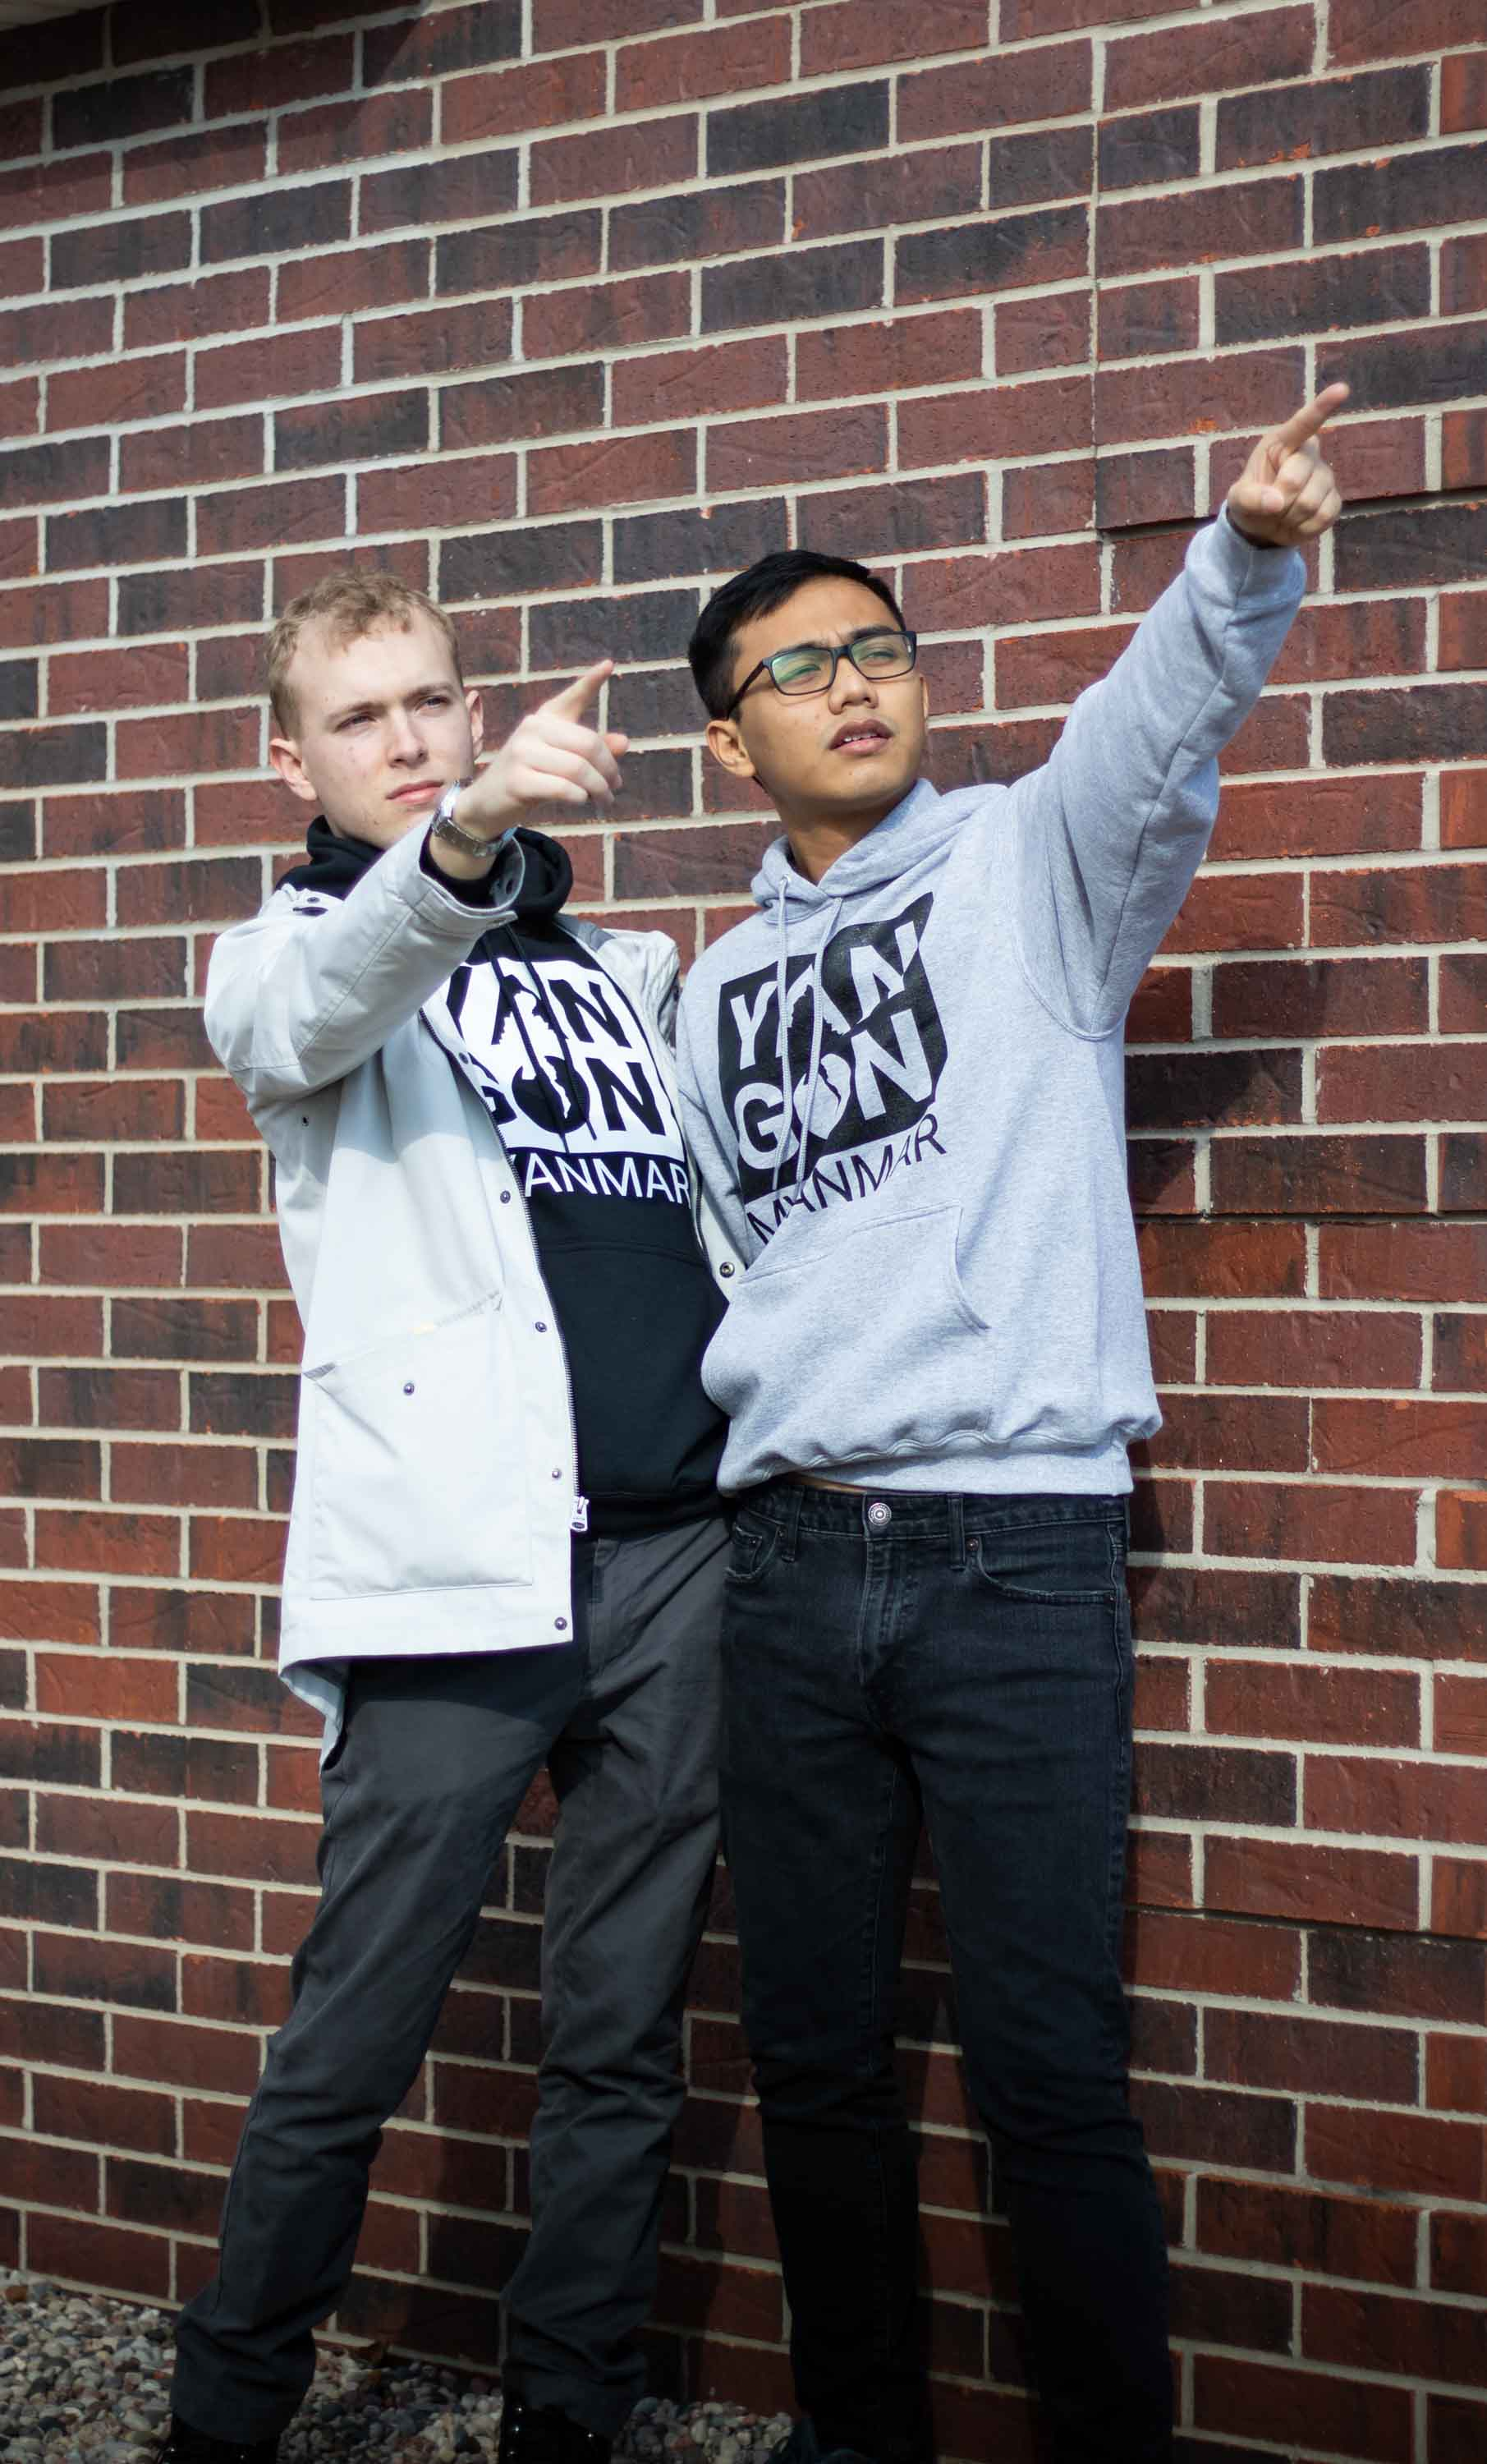 Two men pointing right in front of the bricks